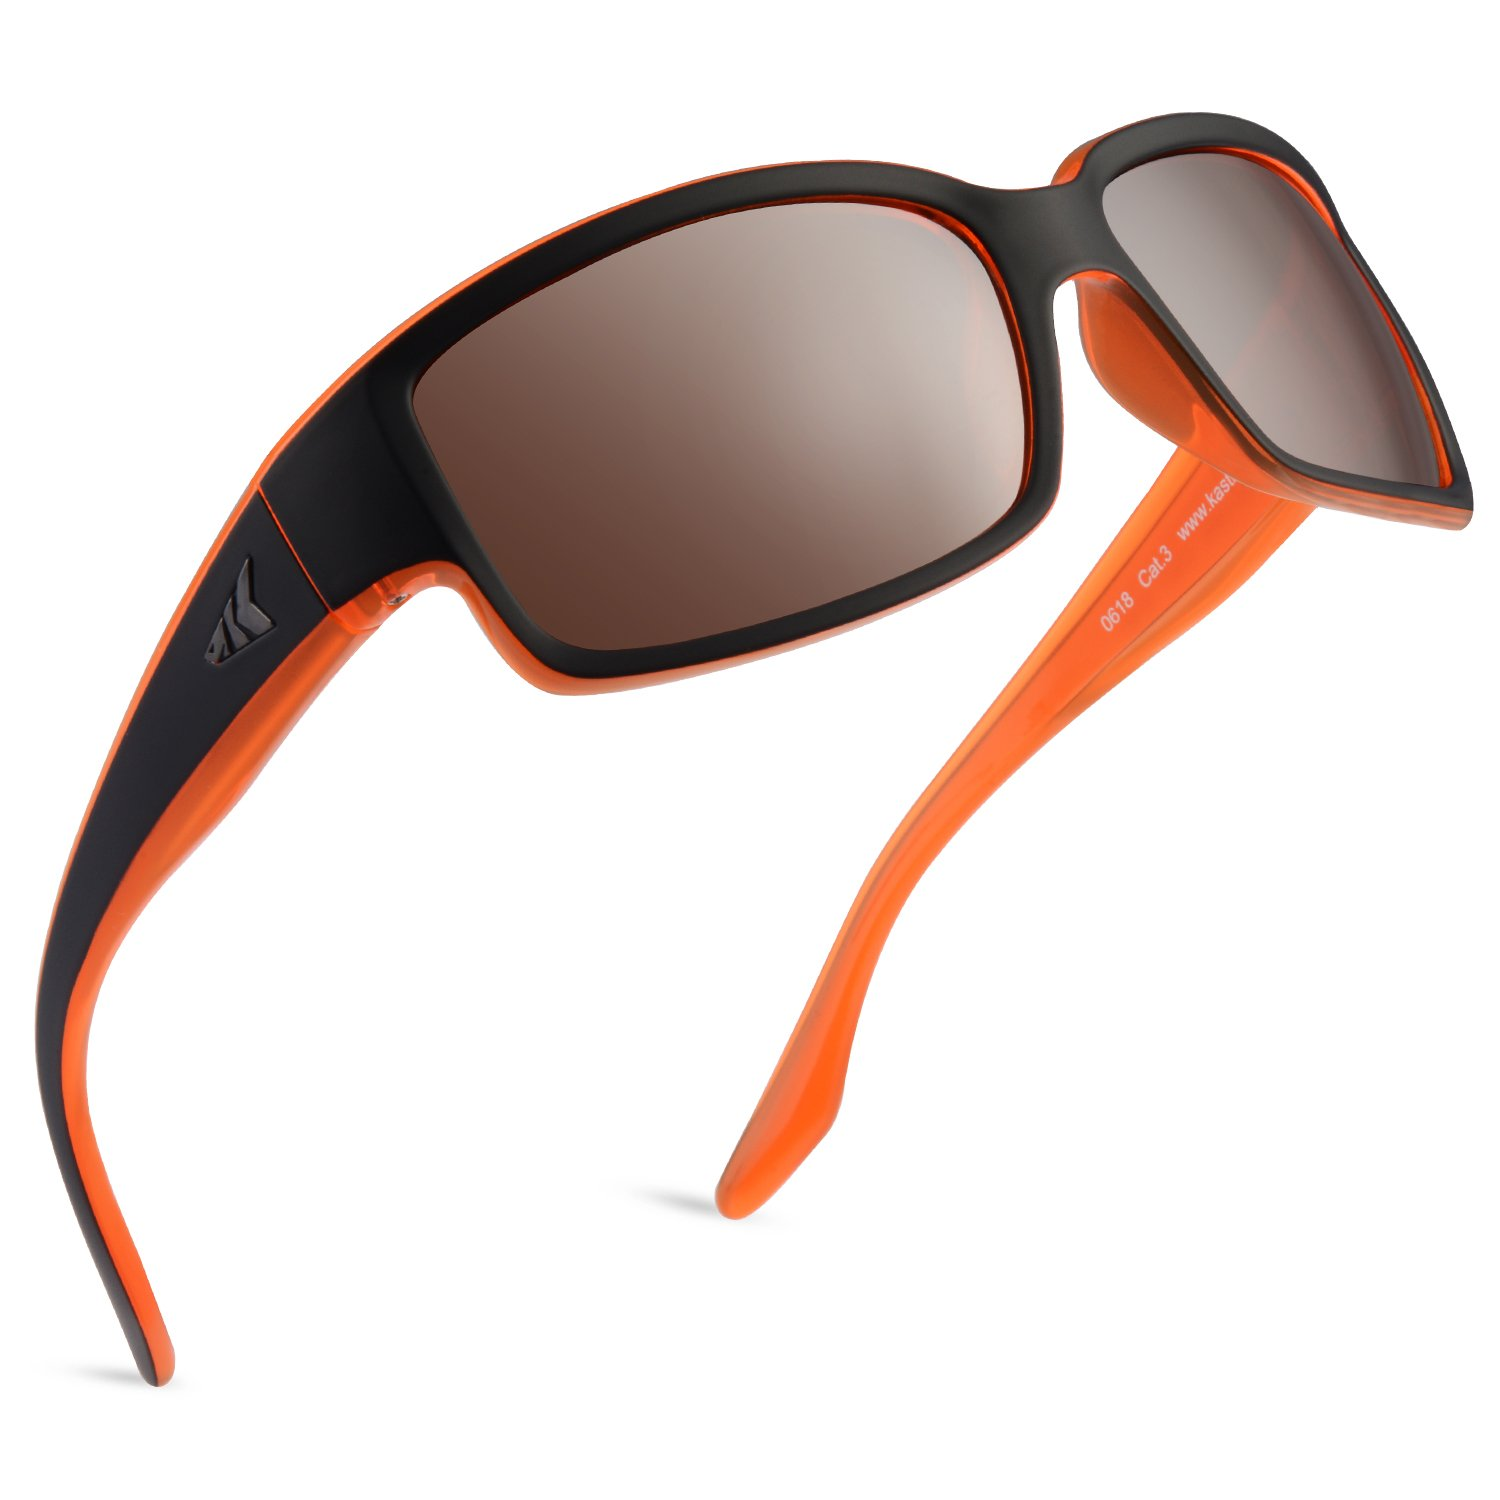 66449b48664 Best Rated in Sunglasses   Helpful Customer Reviews - Amazon.com